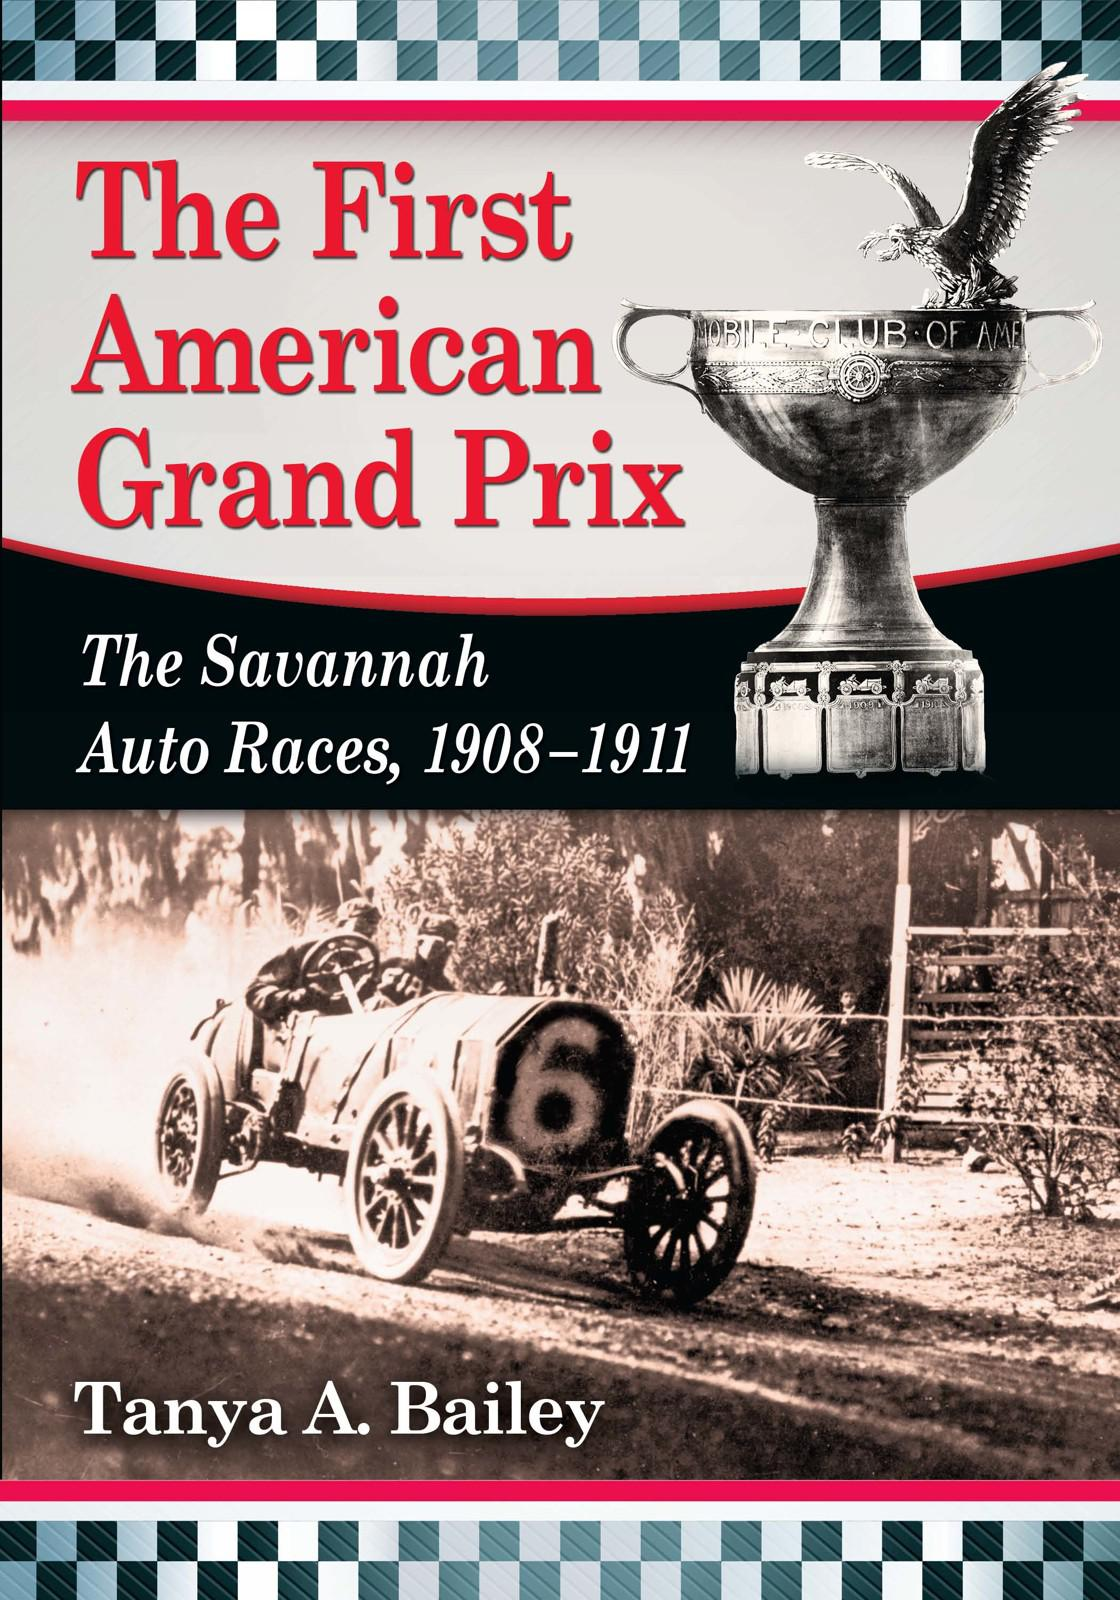 download the first american grand prix the savannah auto races 1908 1911 softarchive. Black Bedroom Furniture Sets. Home Design Ideas